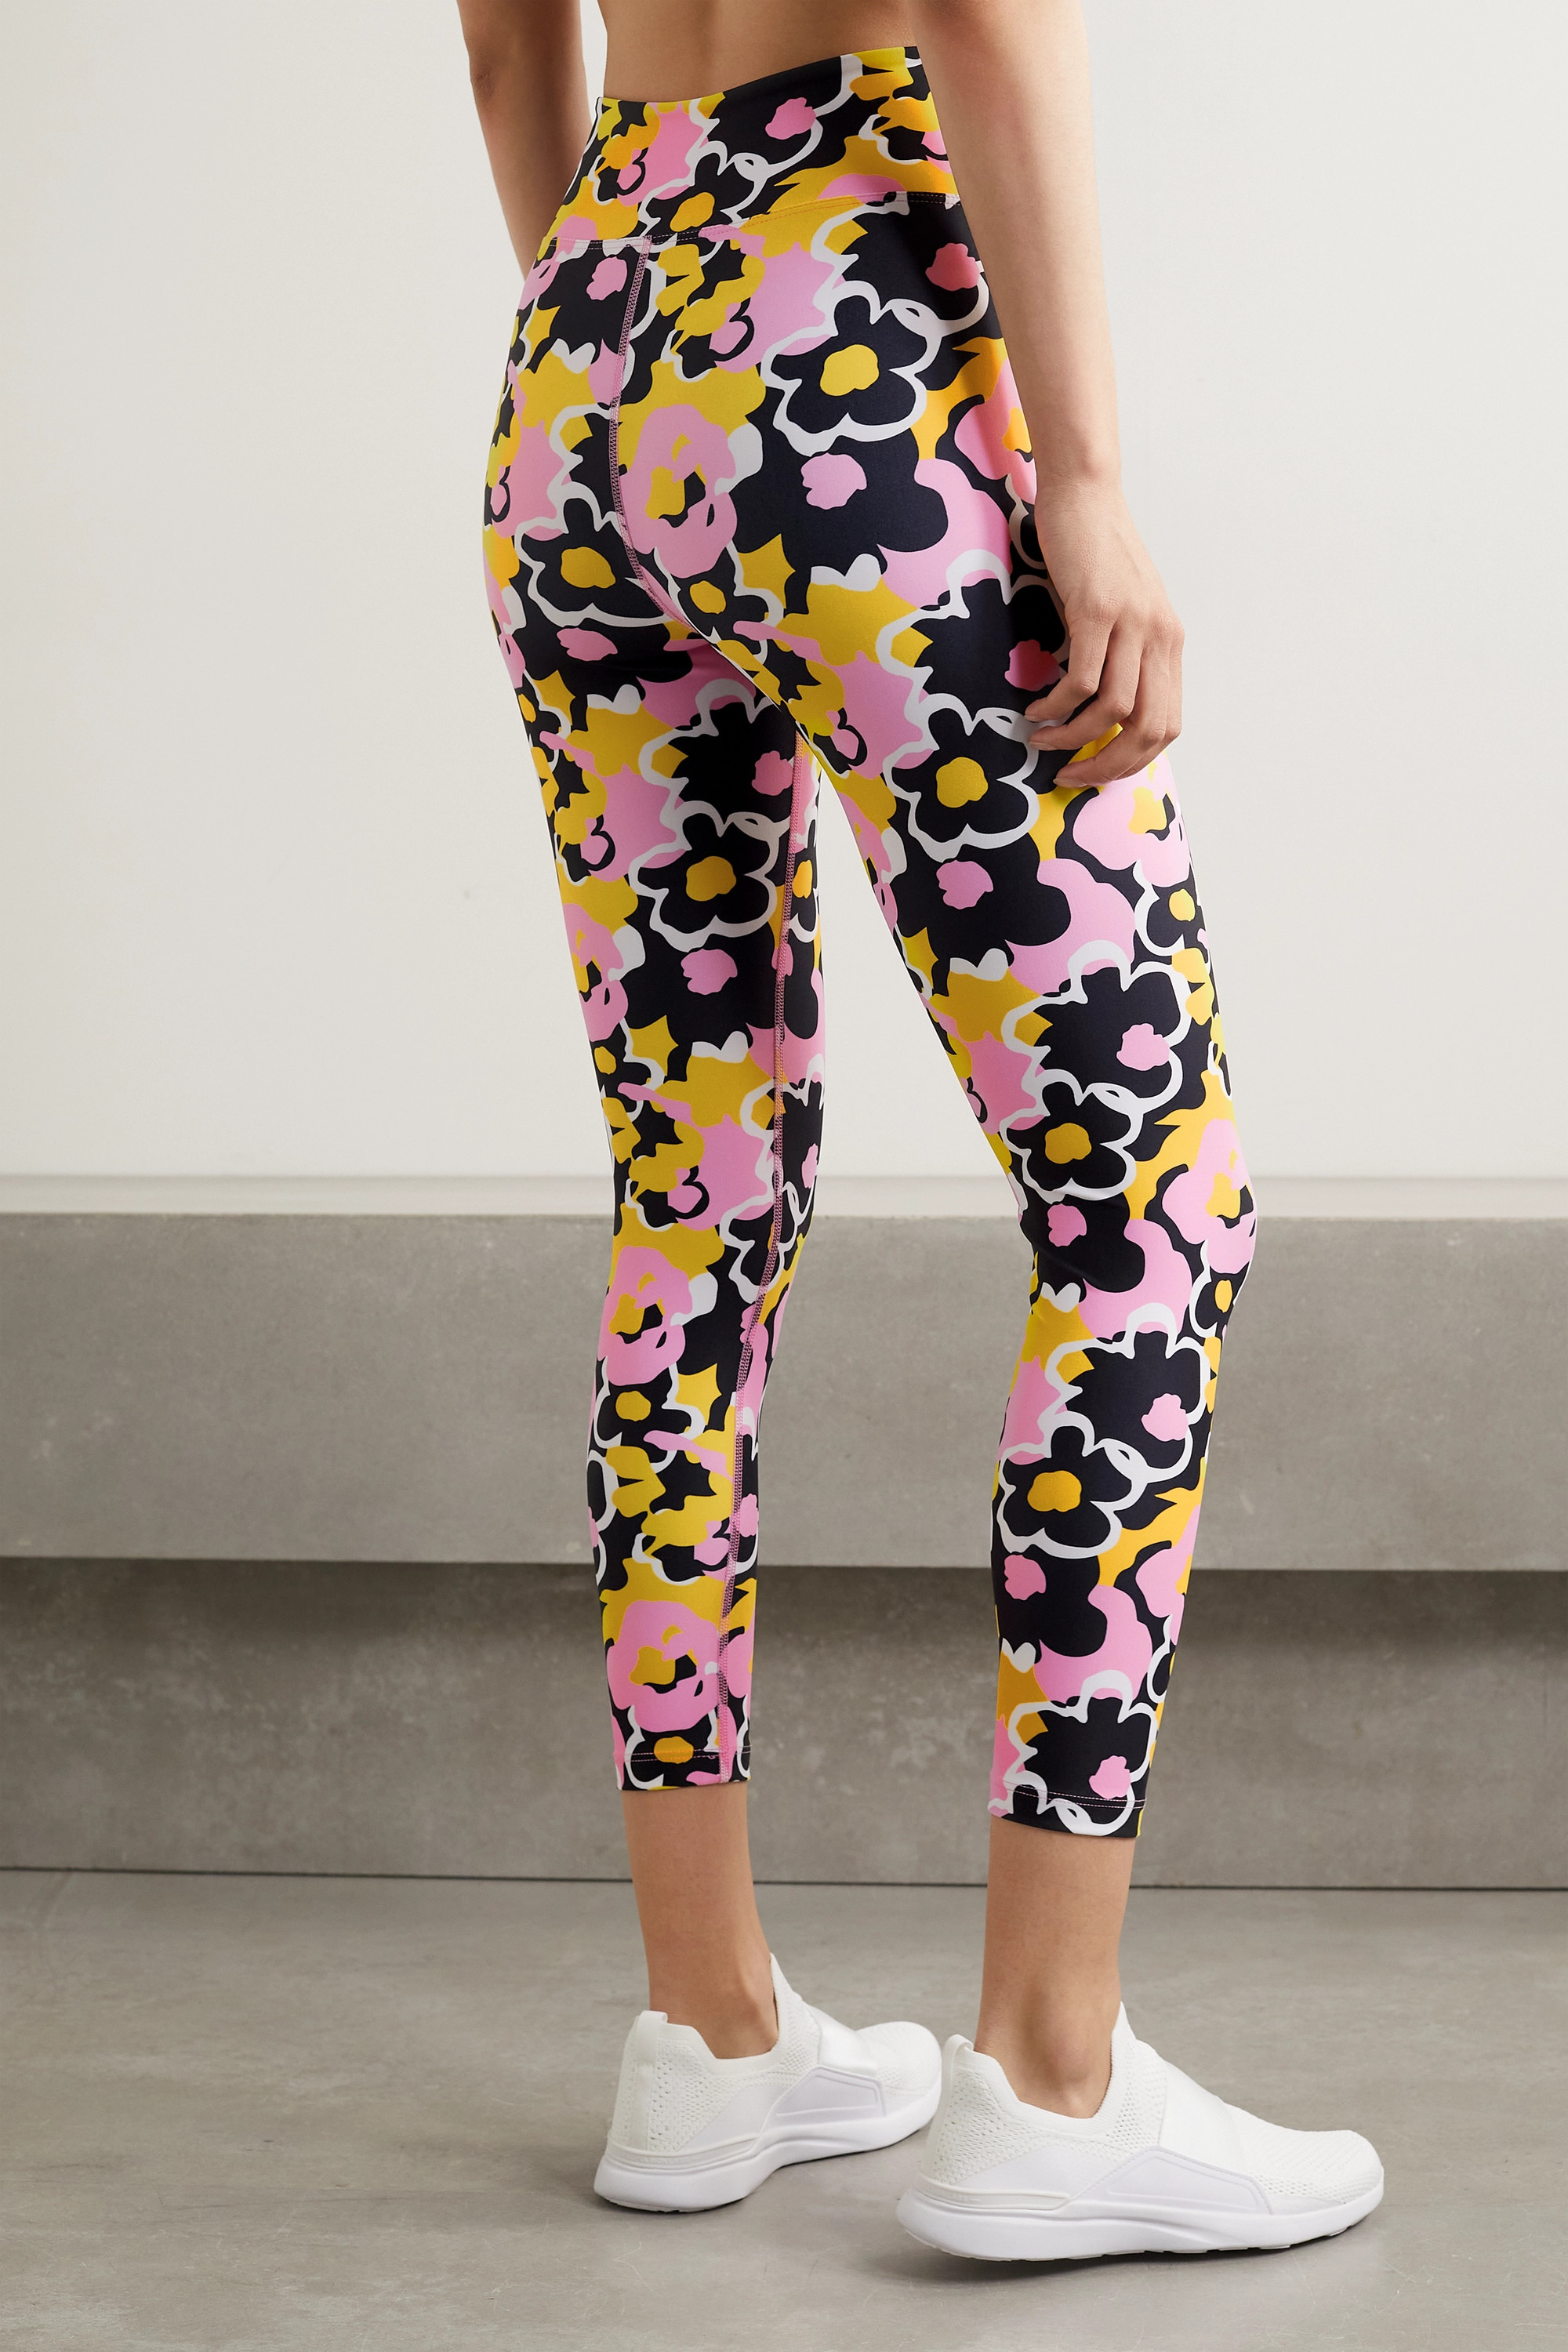 Year of Ours Veronica floral-print stretch leggings